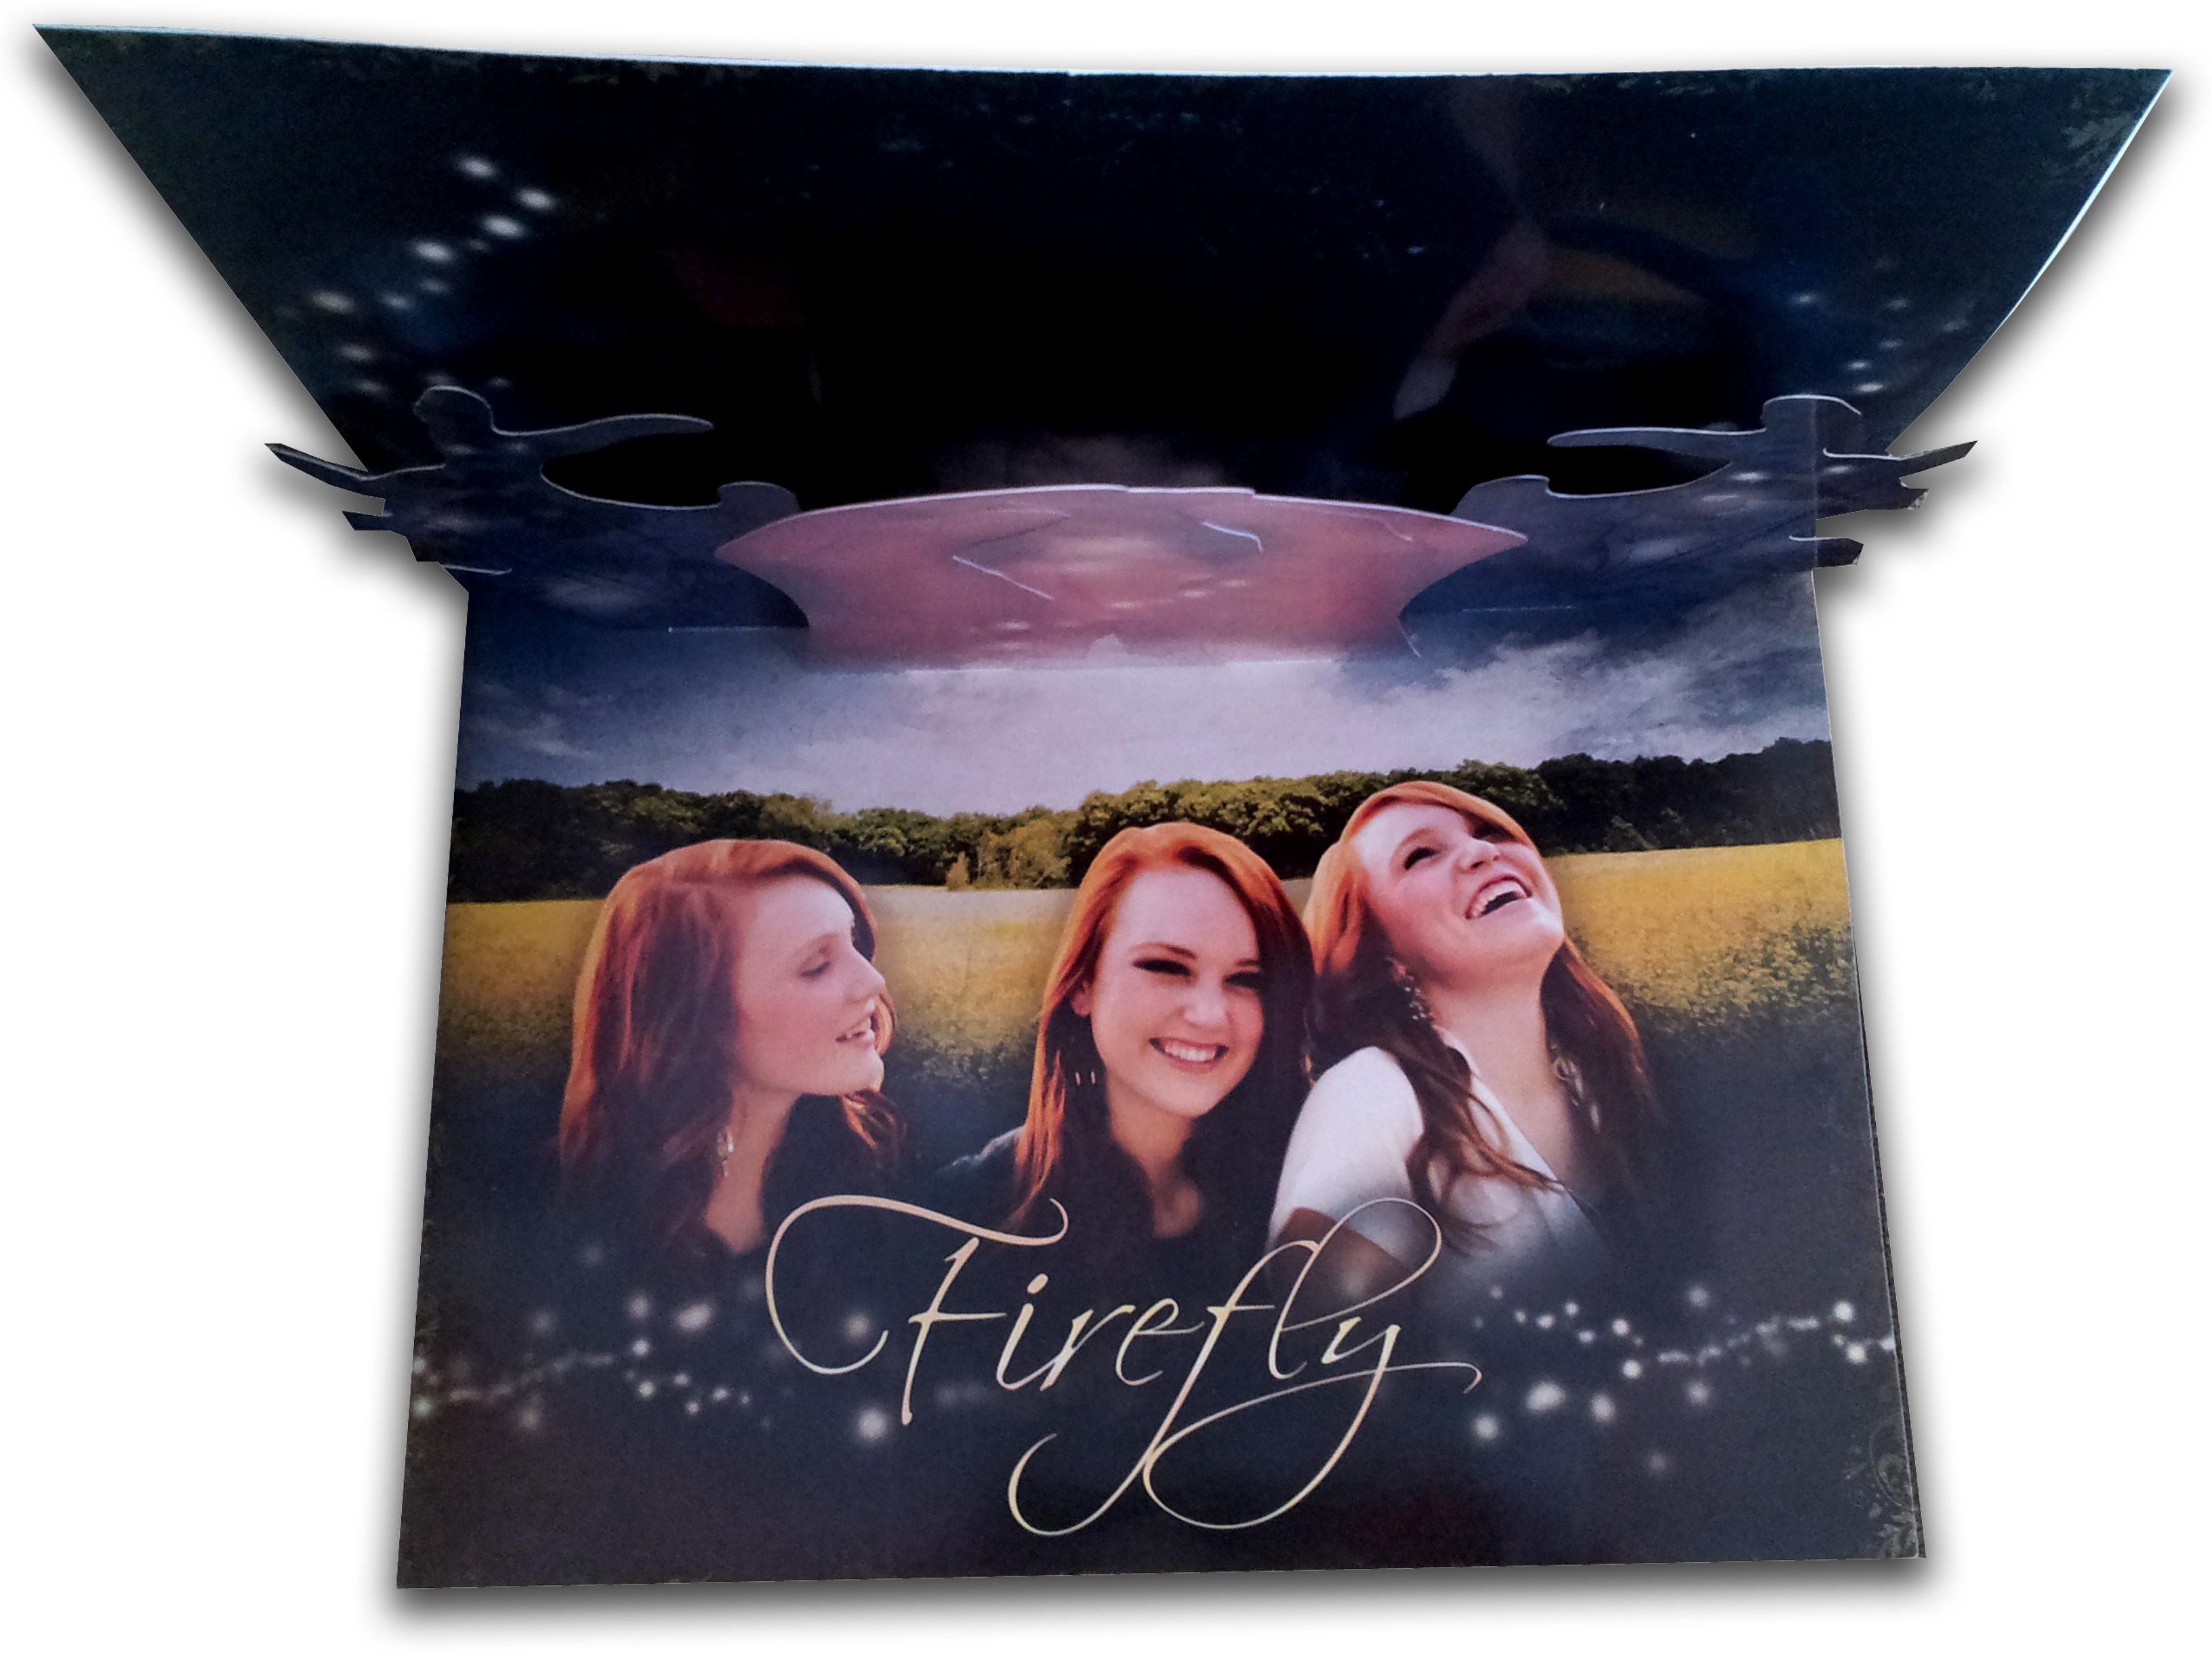 Firefly Pop Up Press Kit Inside View 4